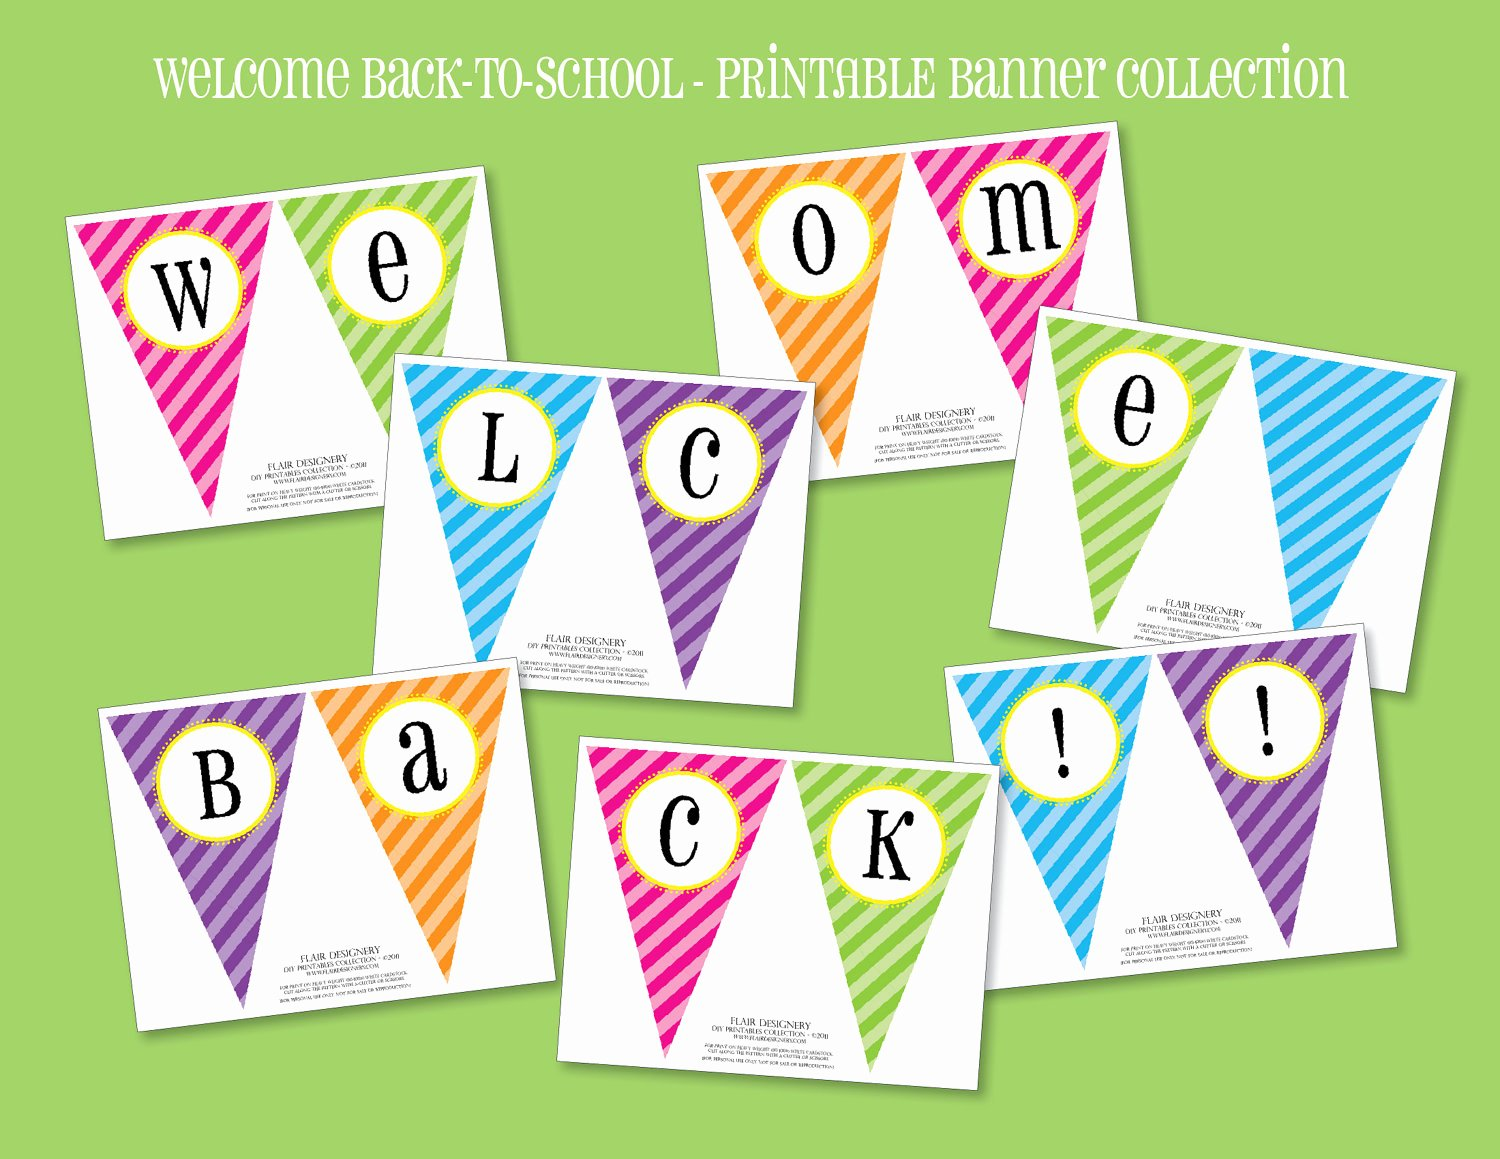 Banner Template for Word Inspirational Wel E Back Banner Printable Free Tierianhenry